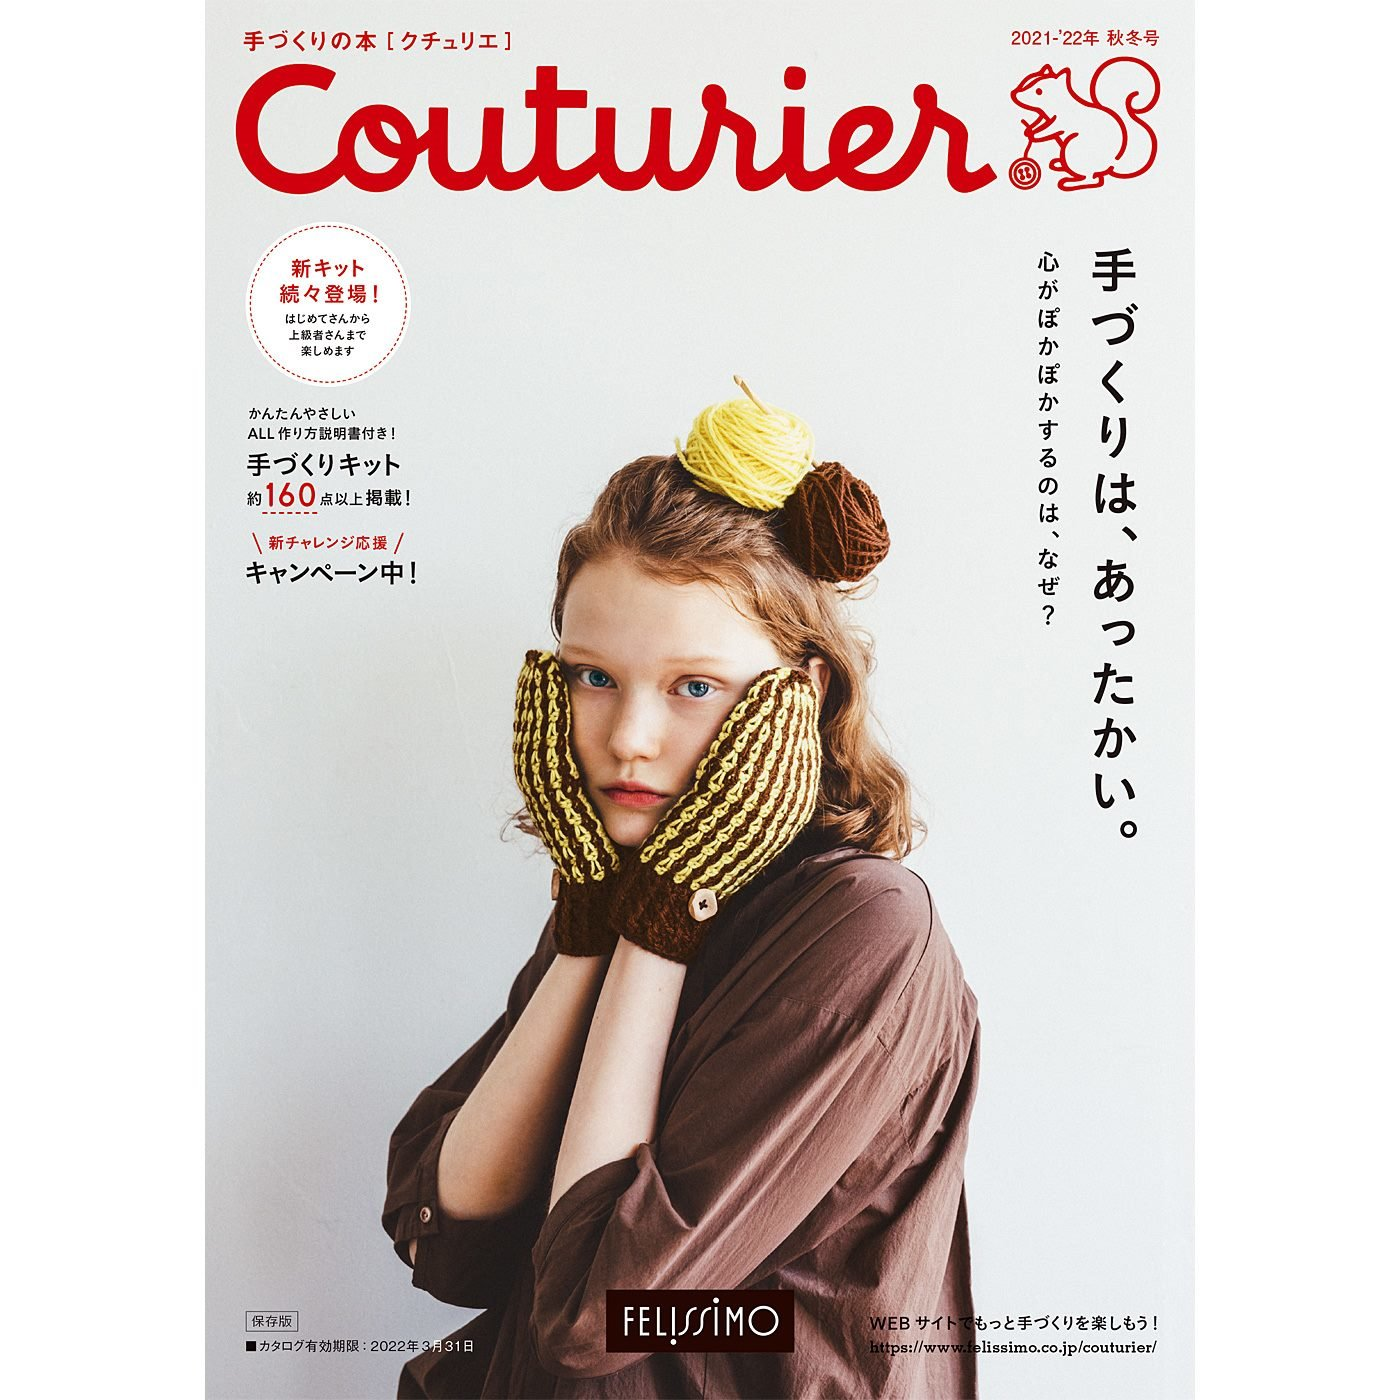 Couturier[クチュリエ] 2021-'22 秋冬号